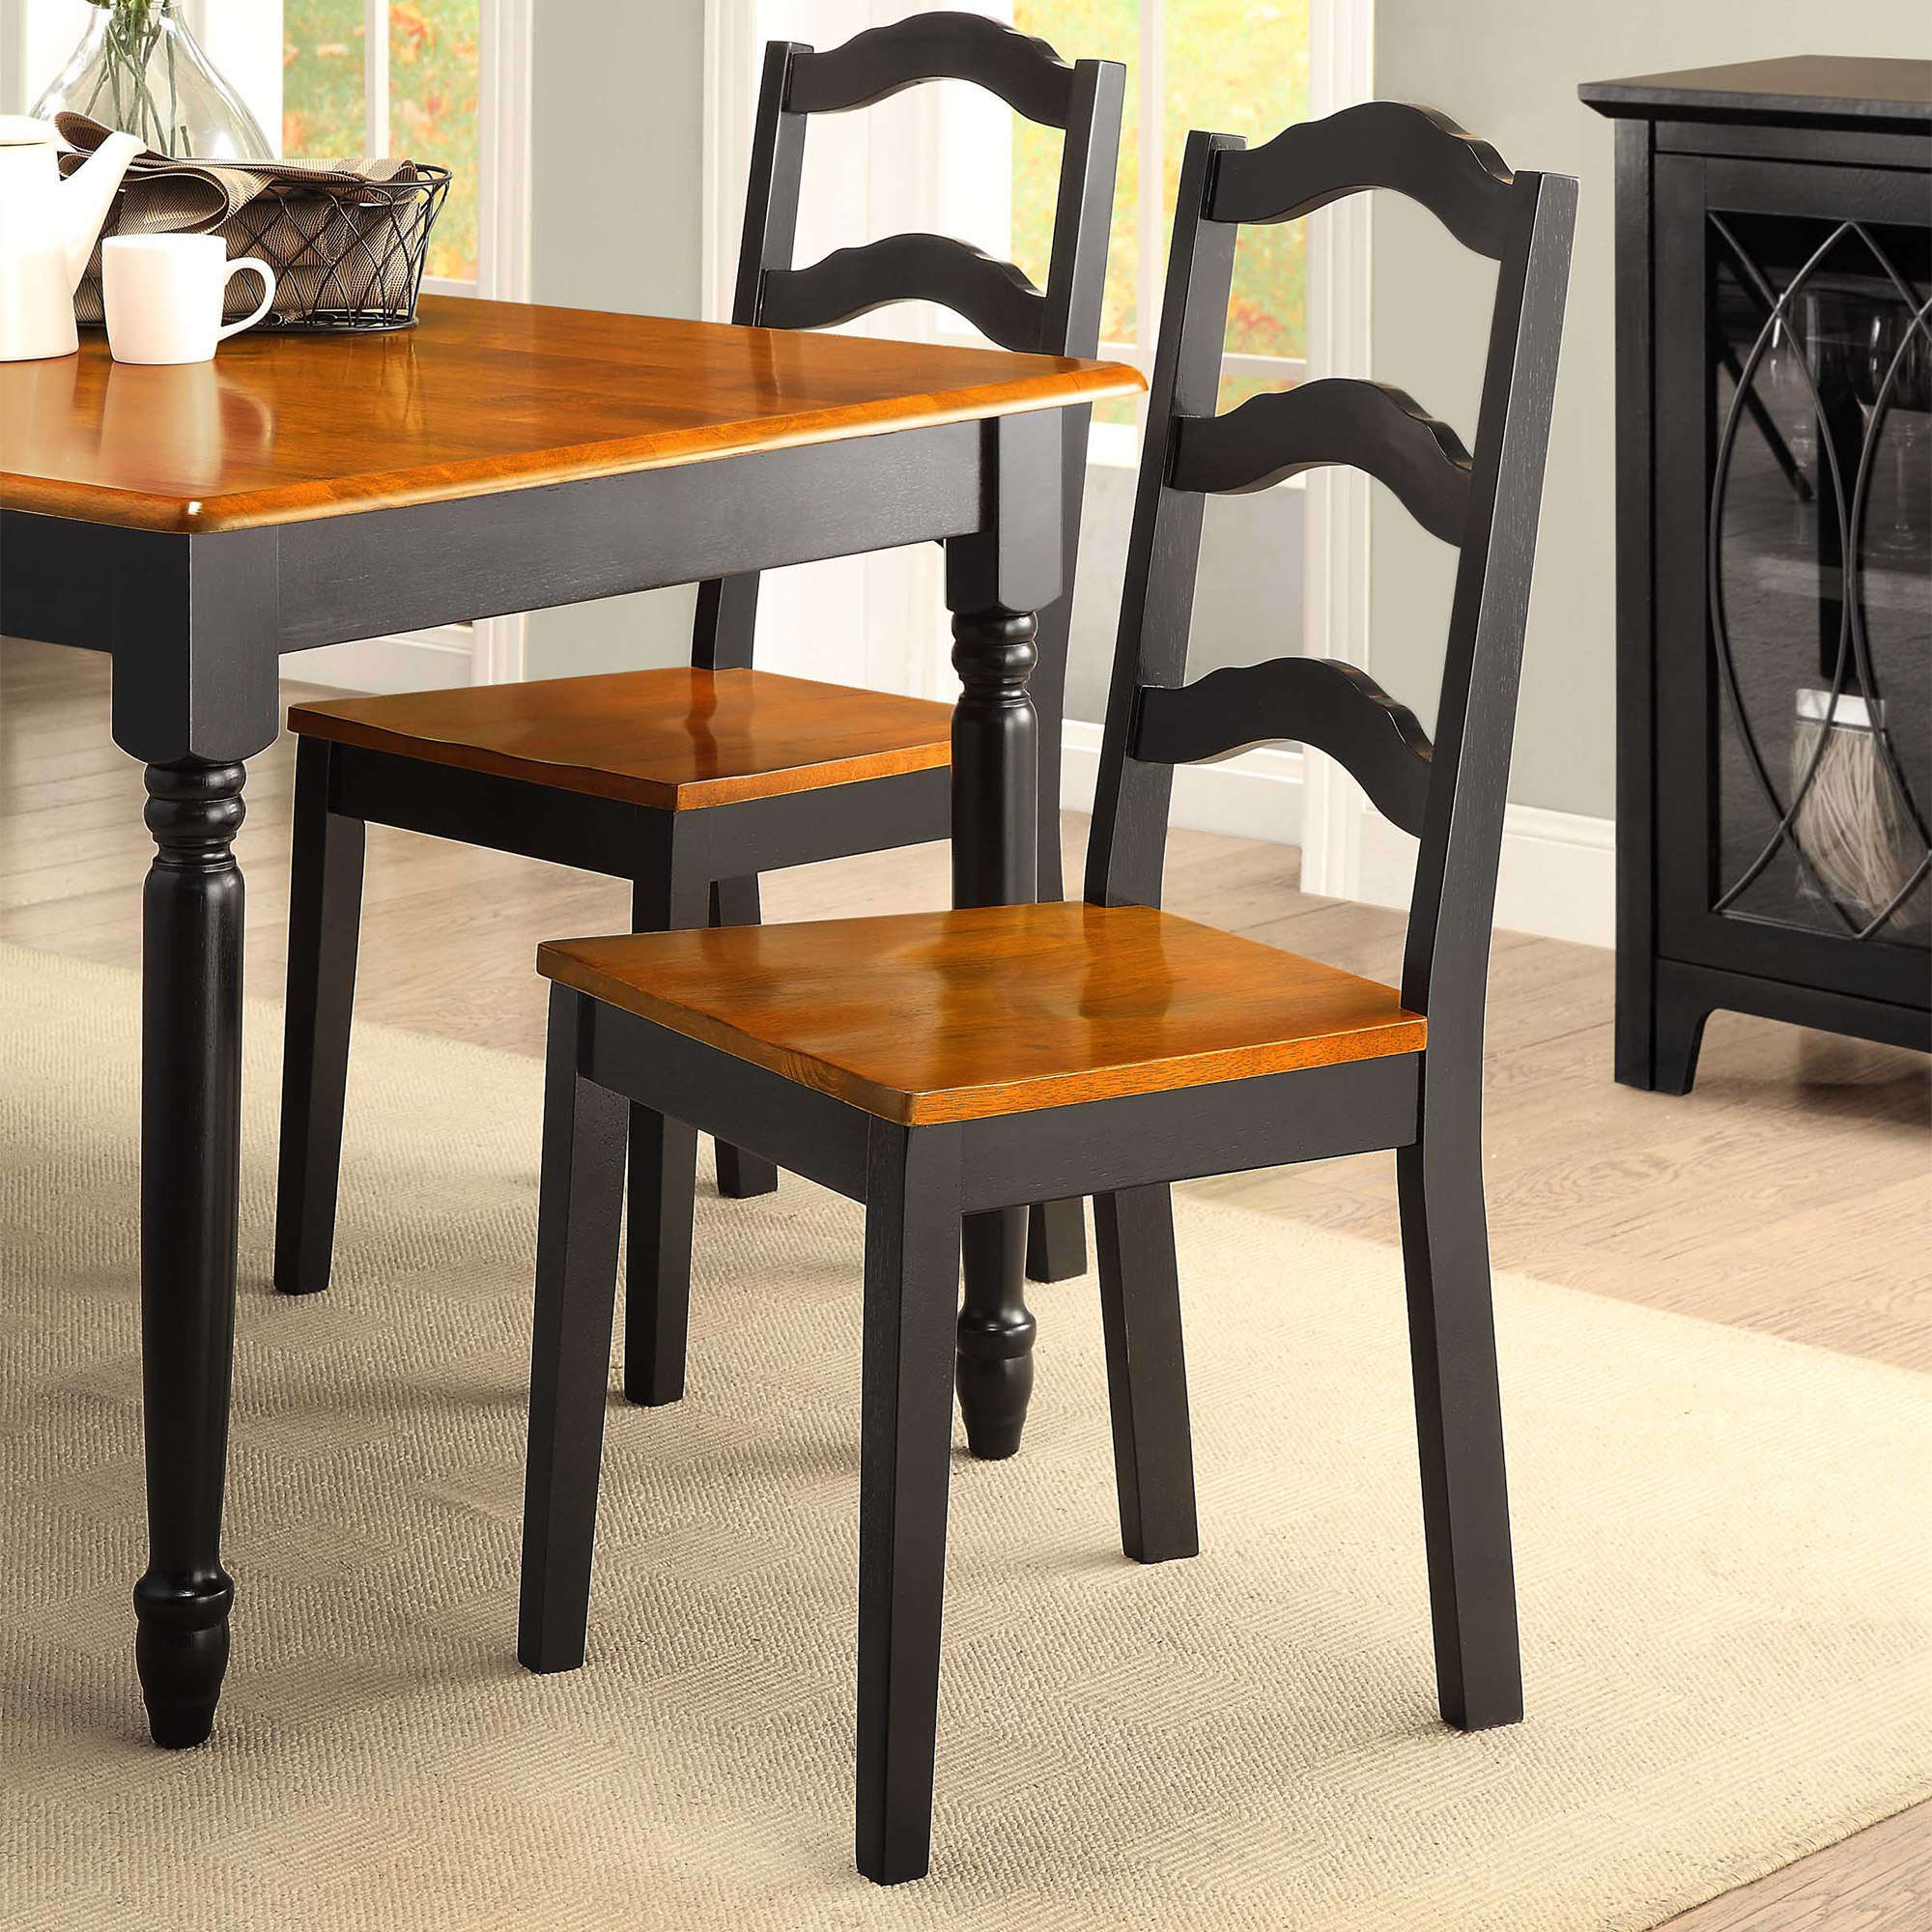 better homes and gardens autumn lane ladder back dining chairs set of 2 black